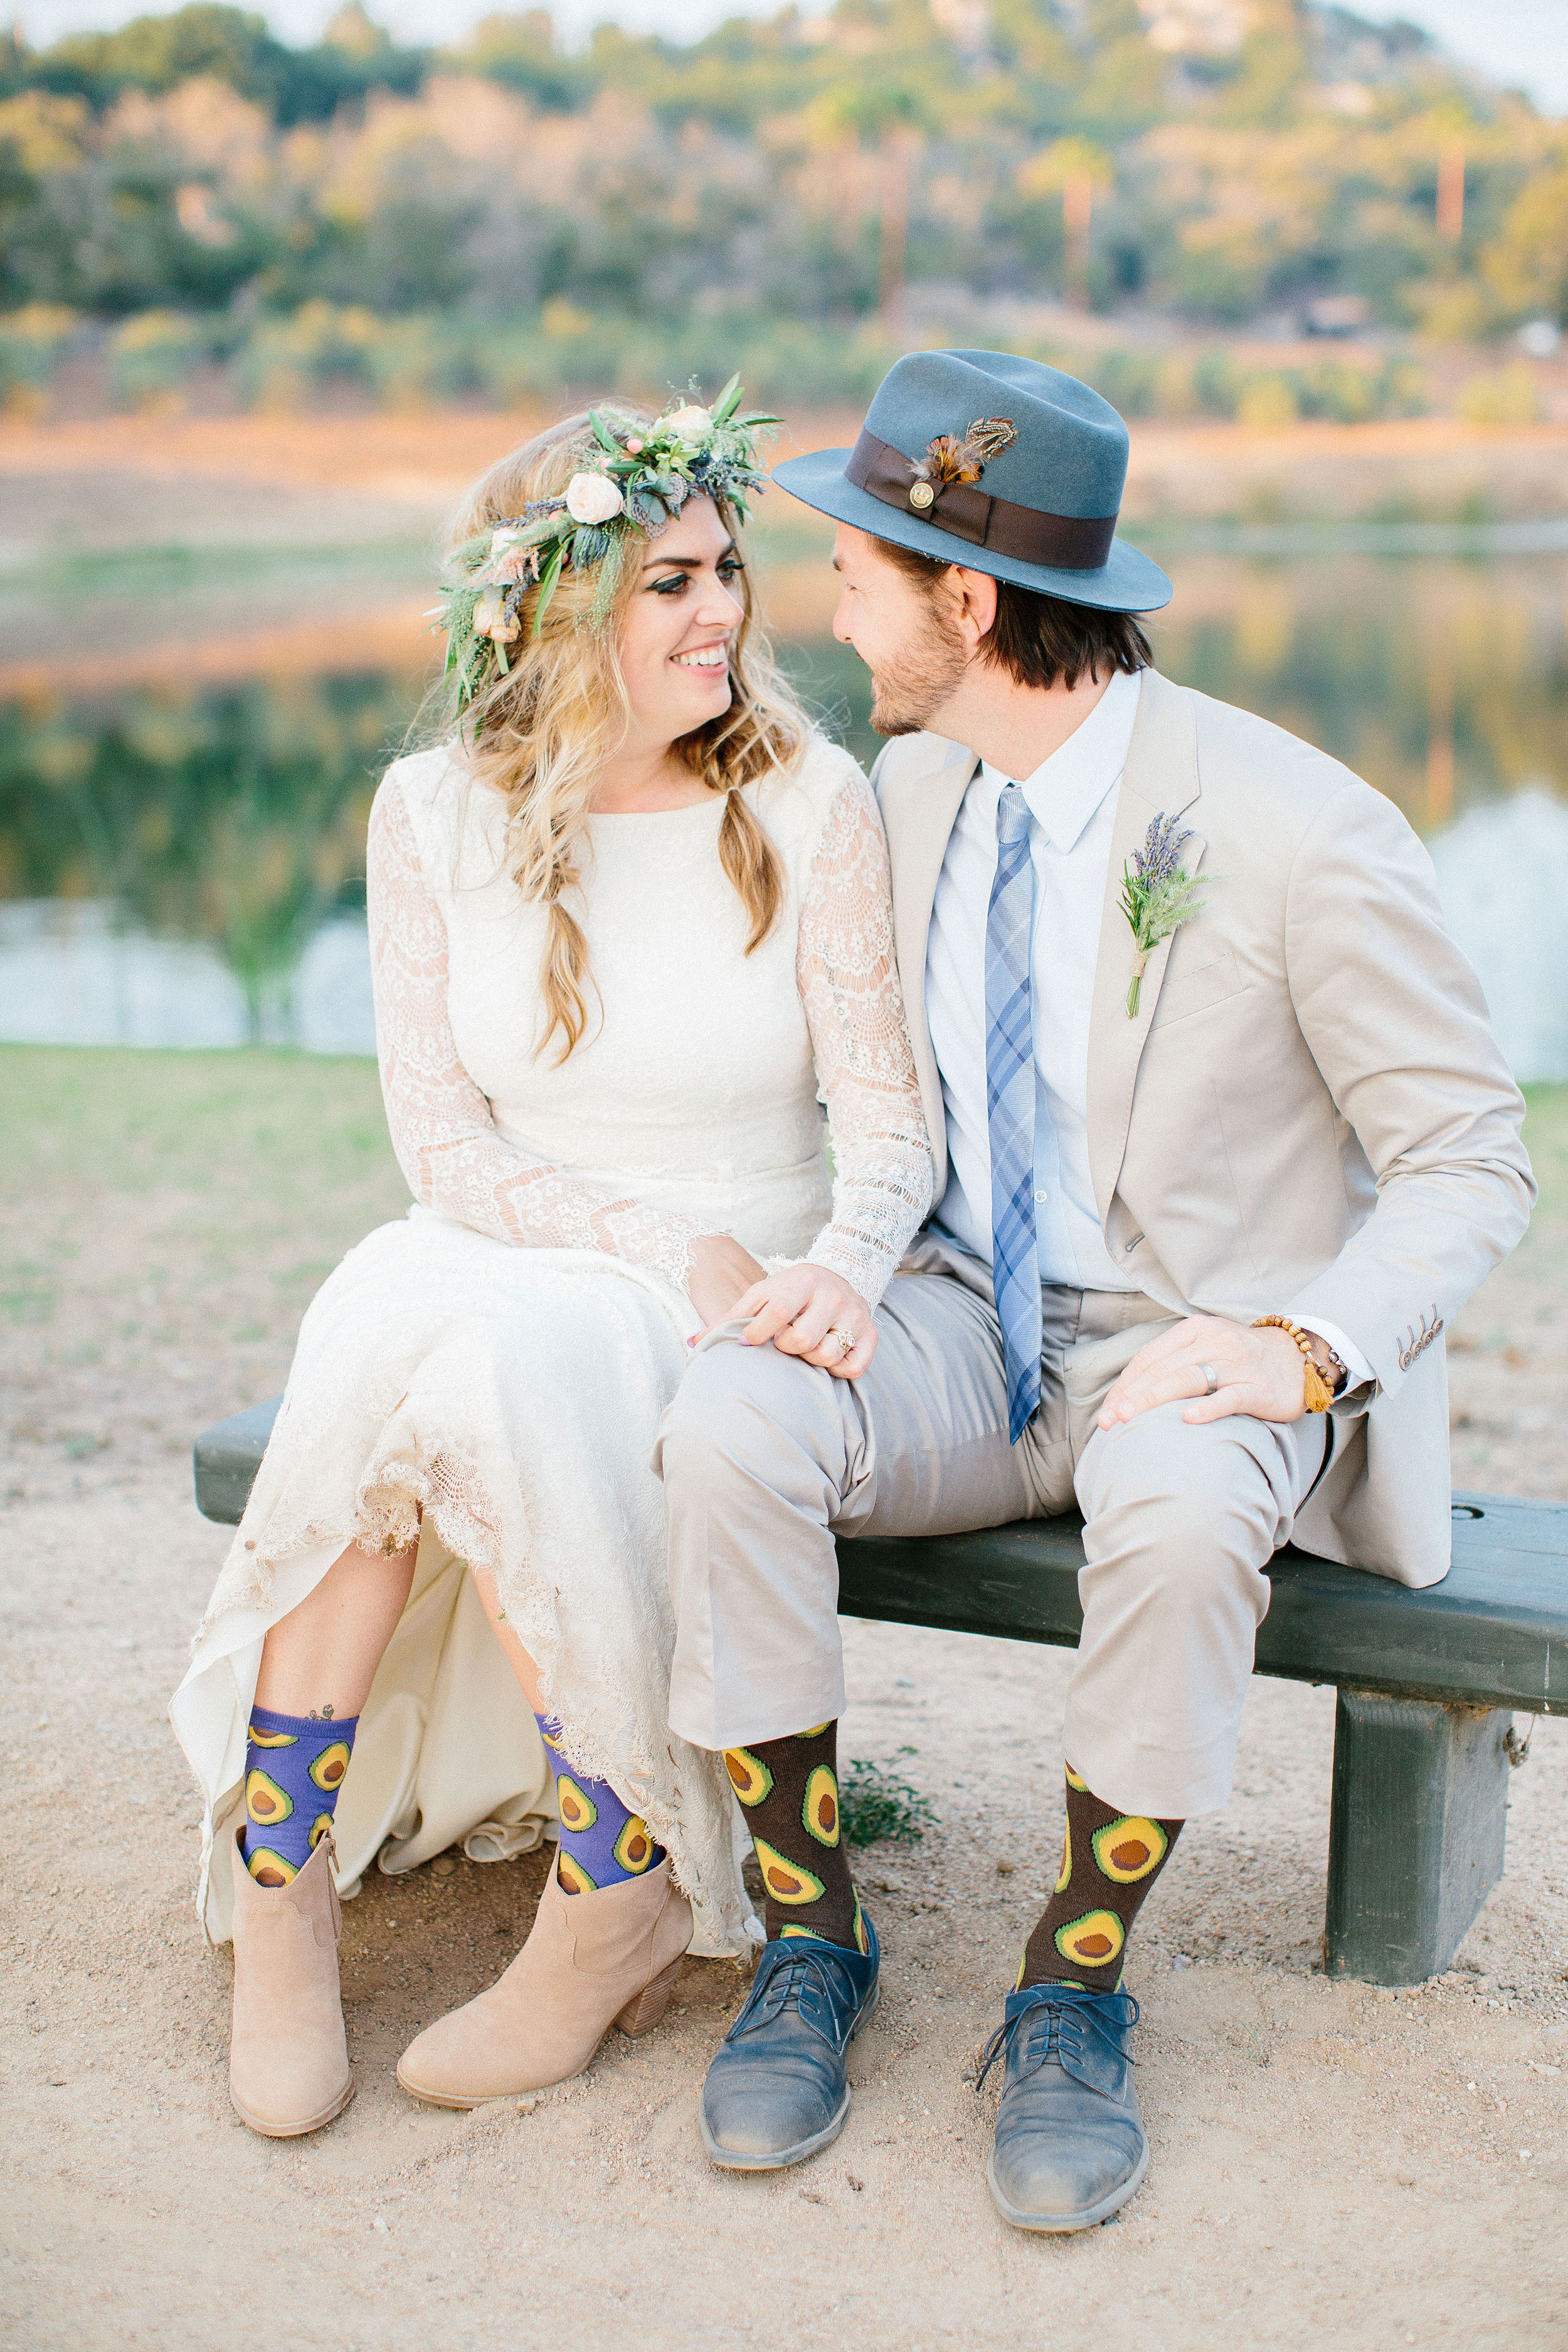 jackie dave wedding couple socks